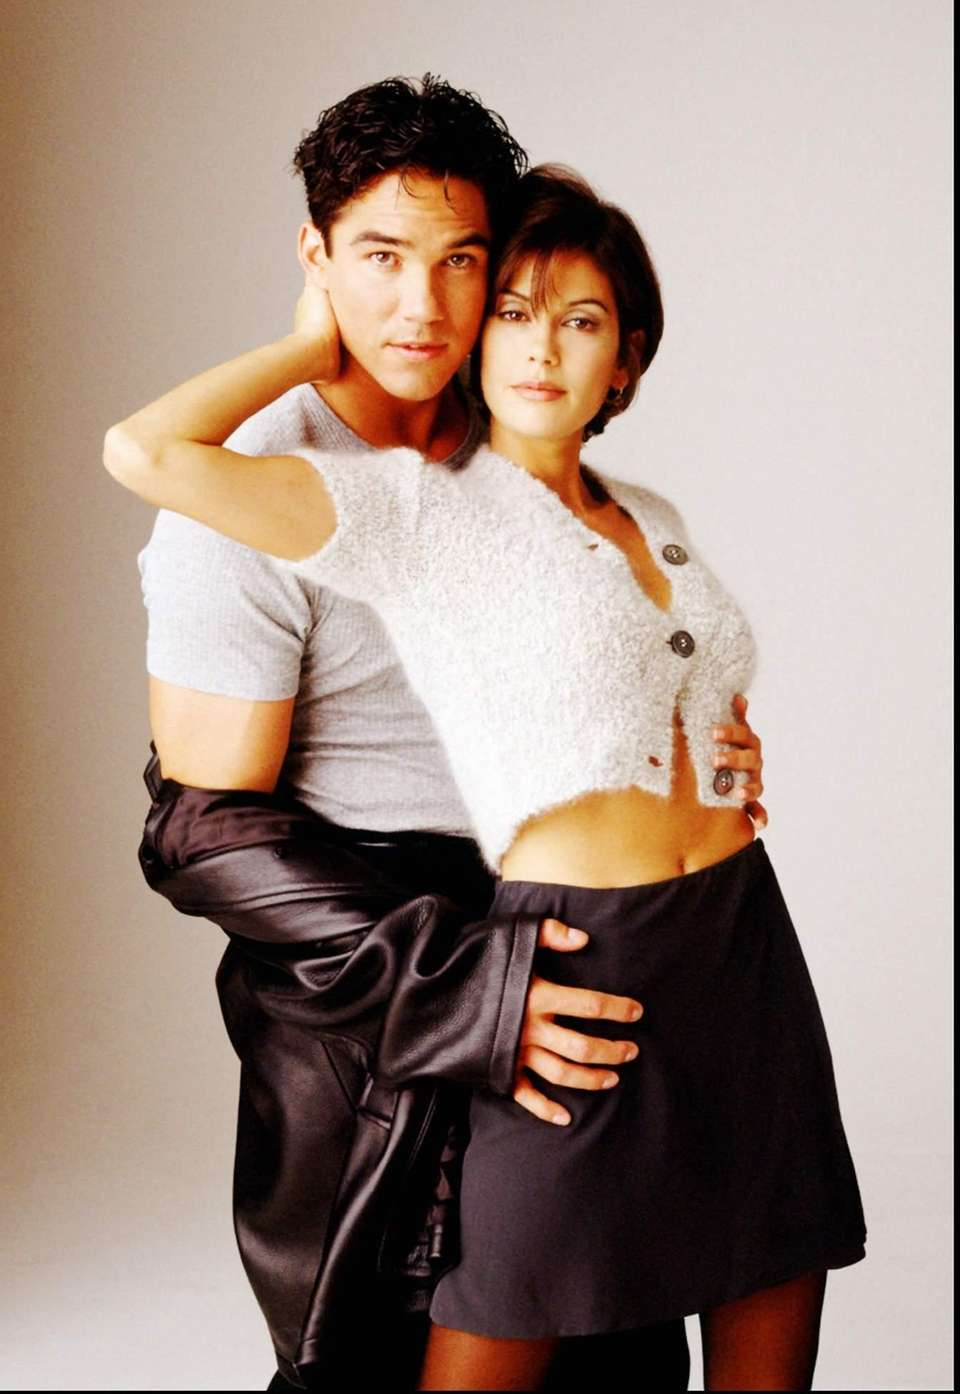 Dean Cain and Teri Hatcher as the mid-1990s